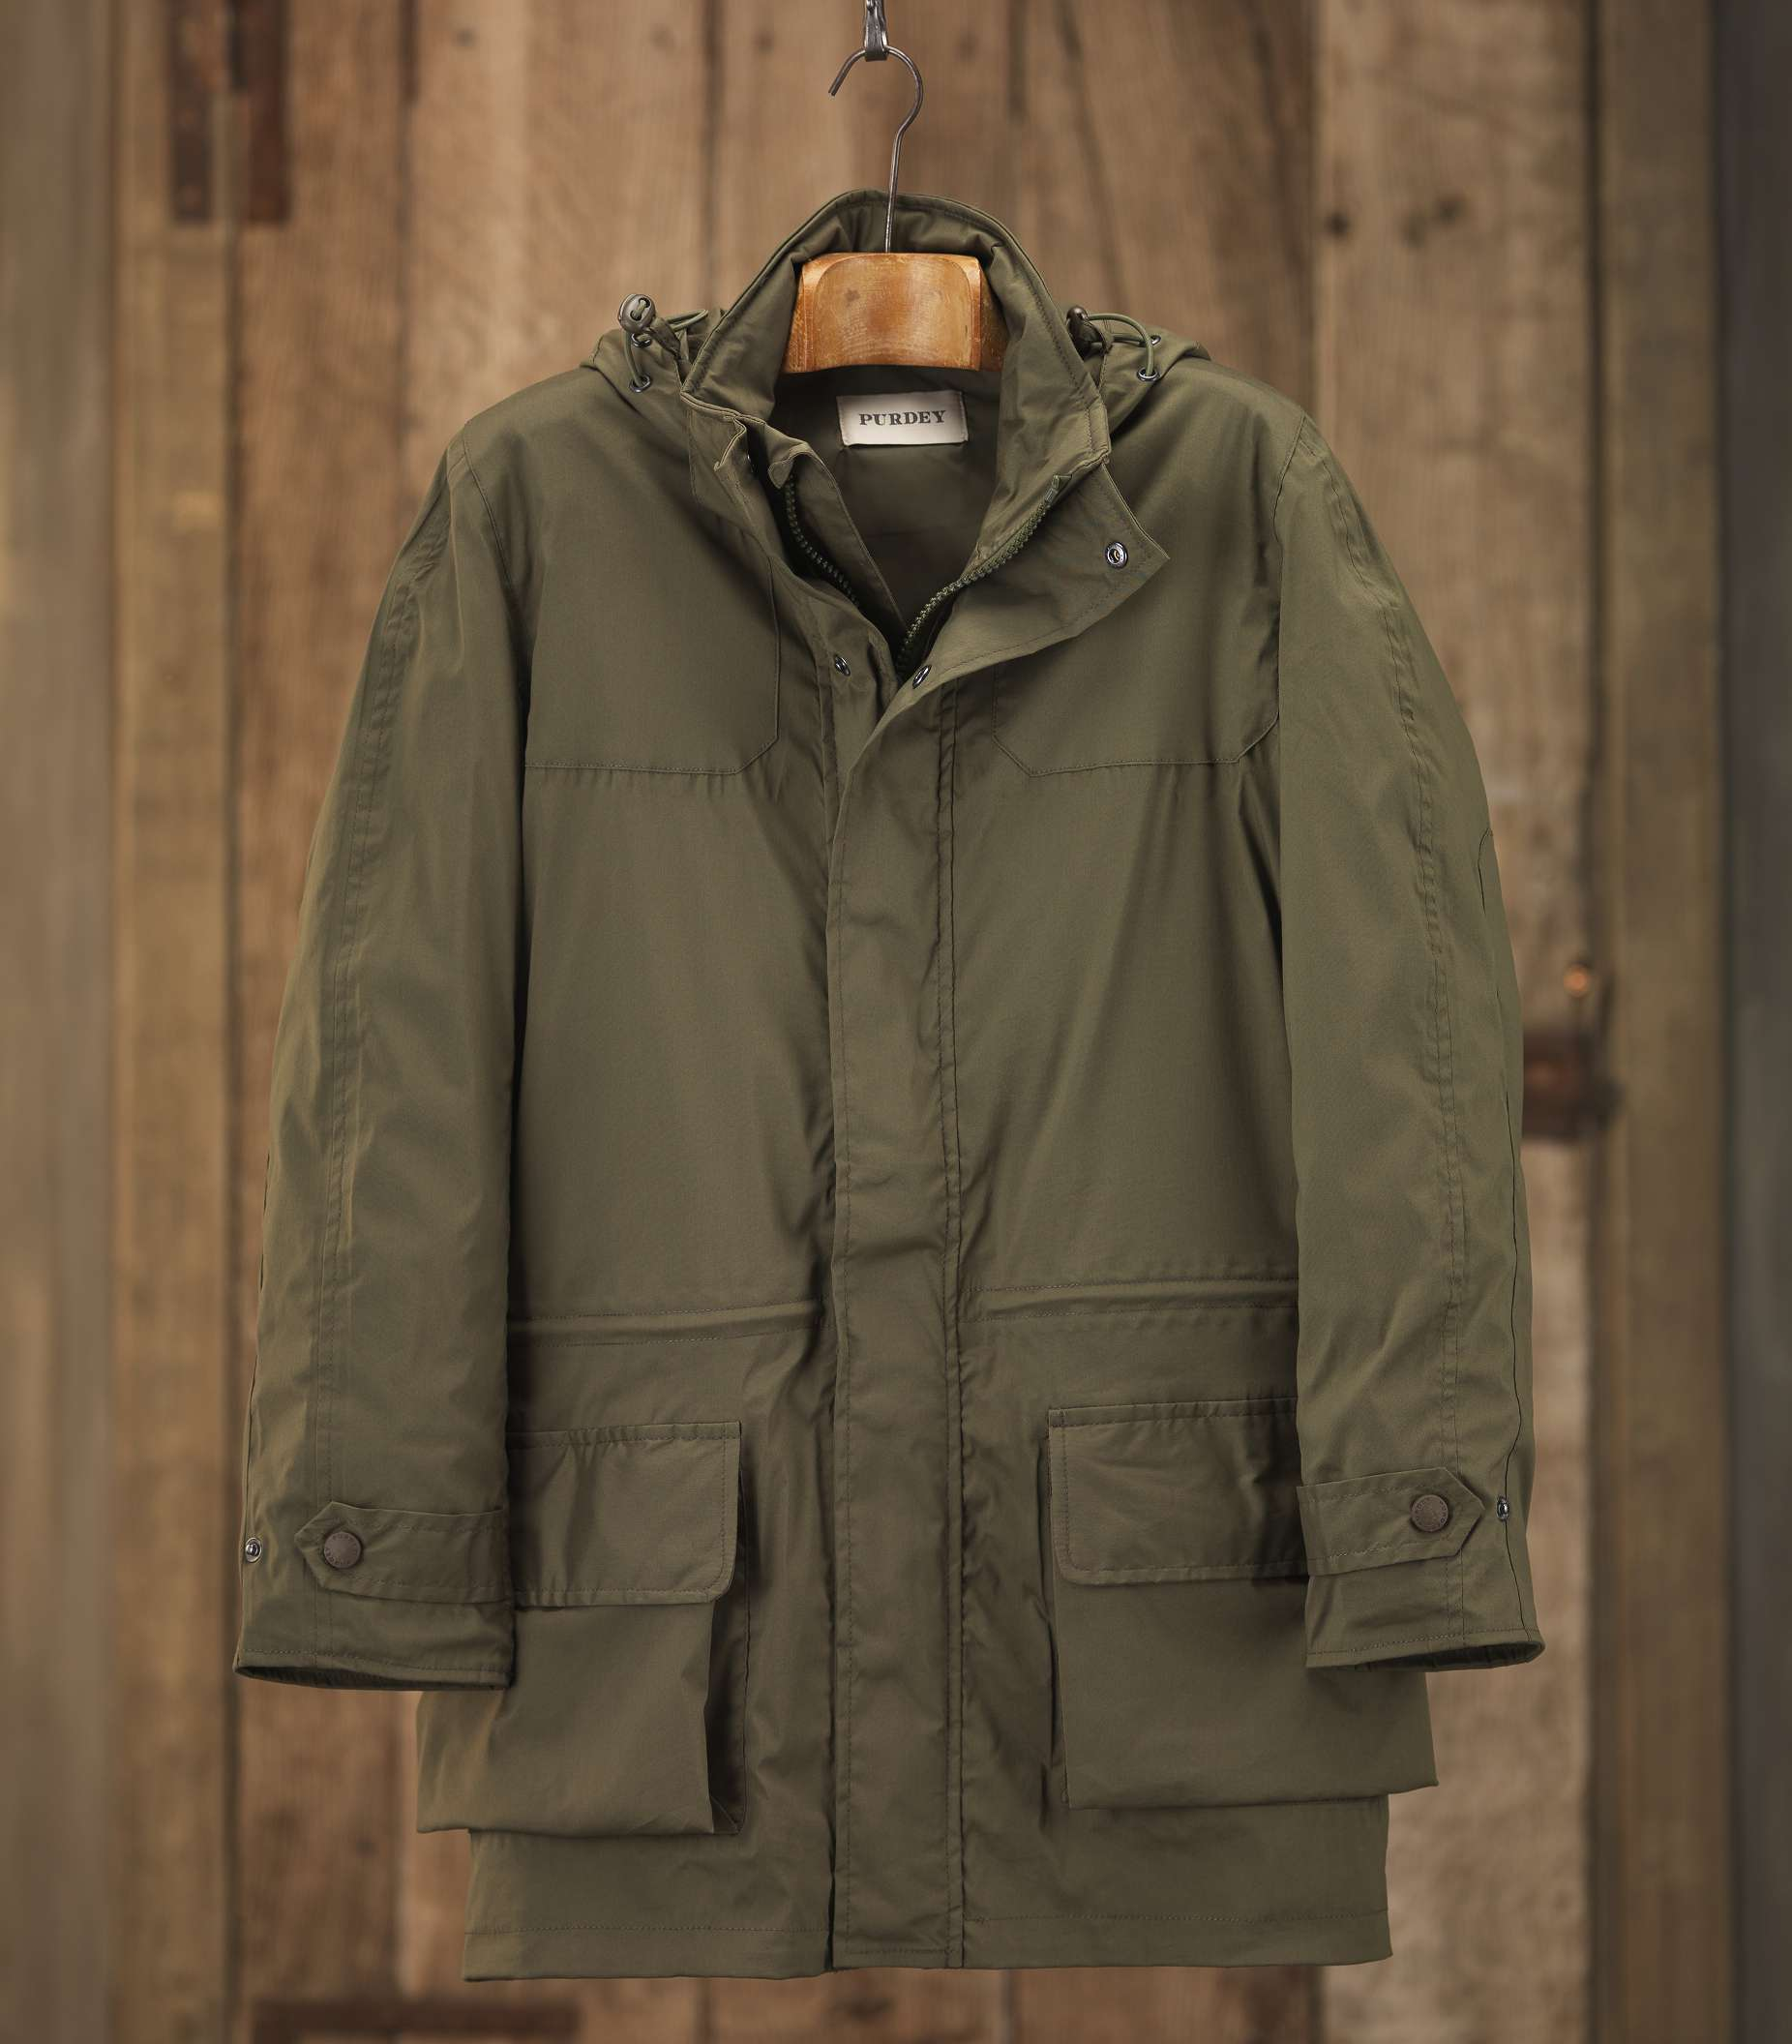 purdey action back jacket